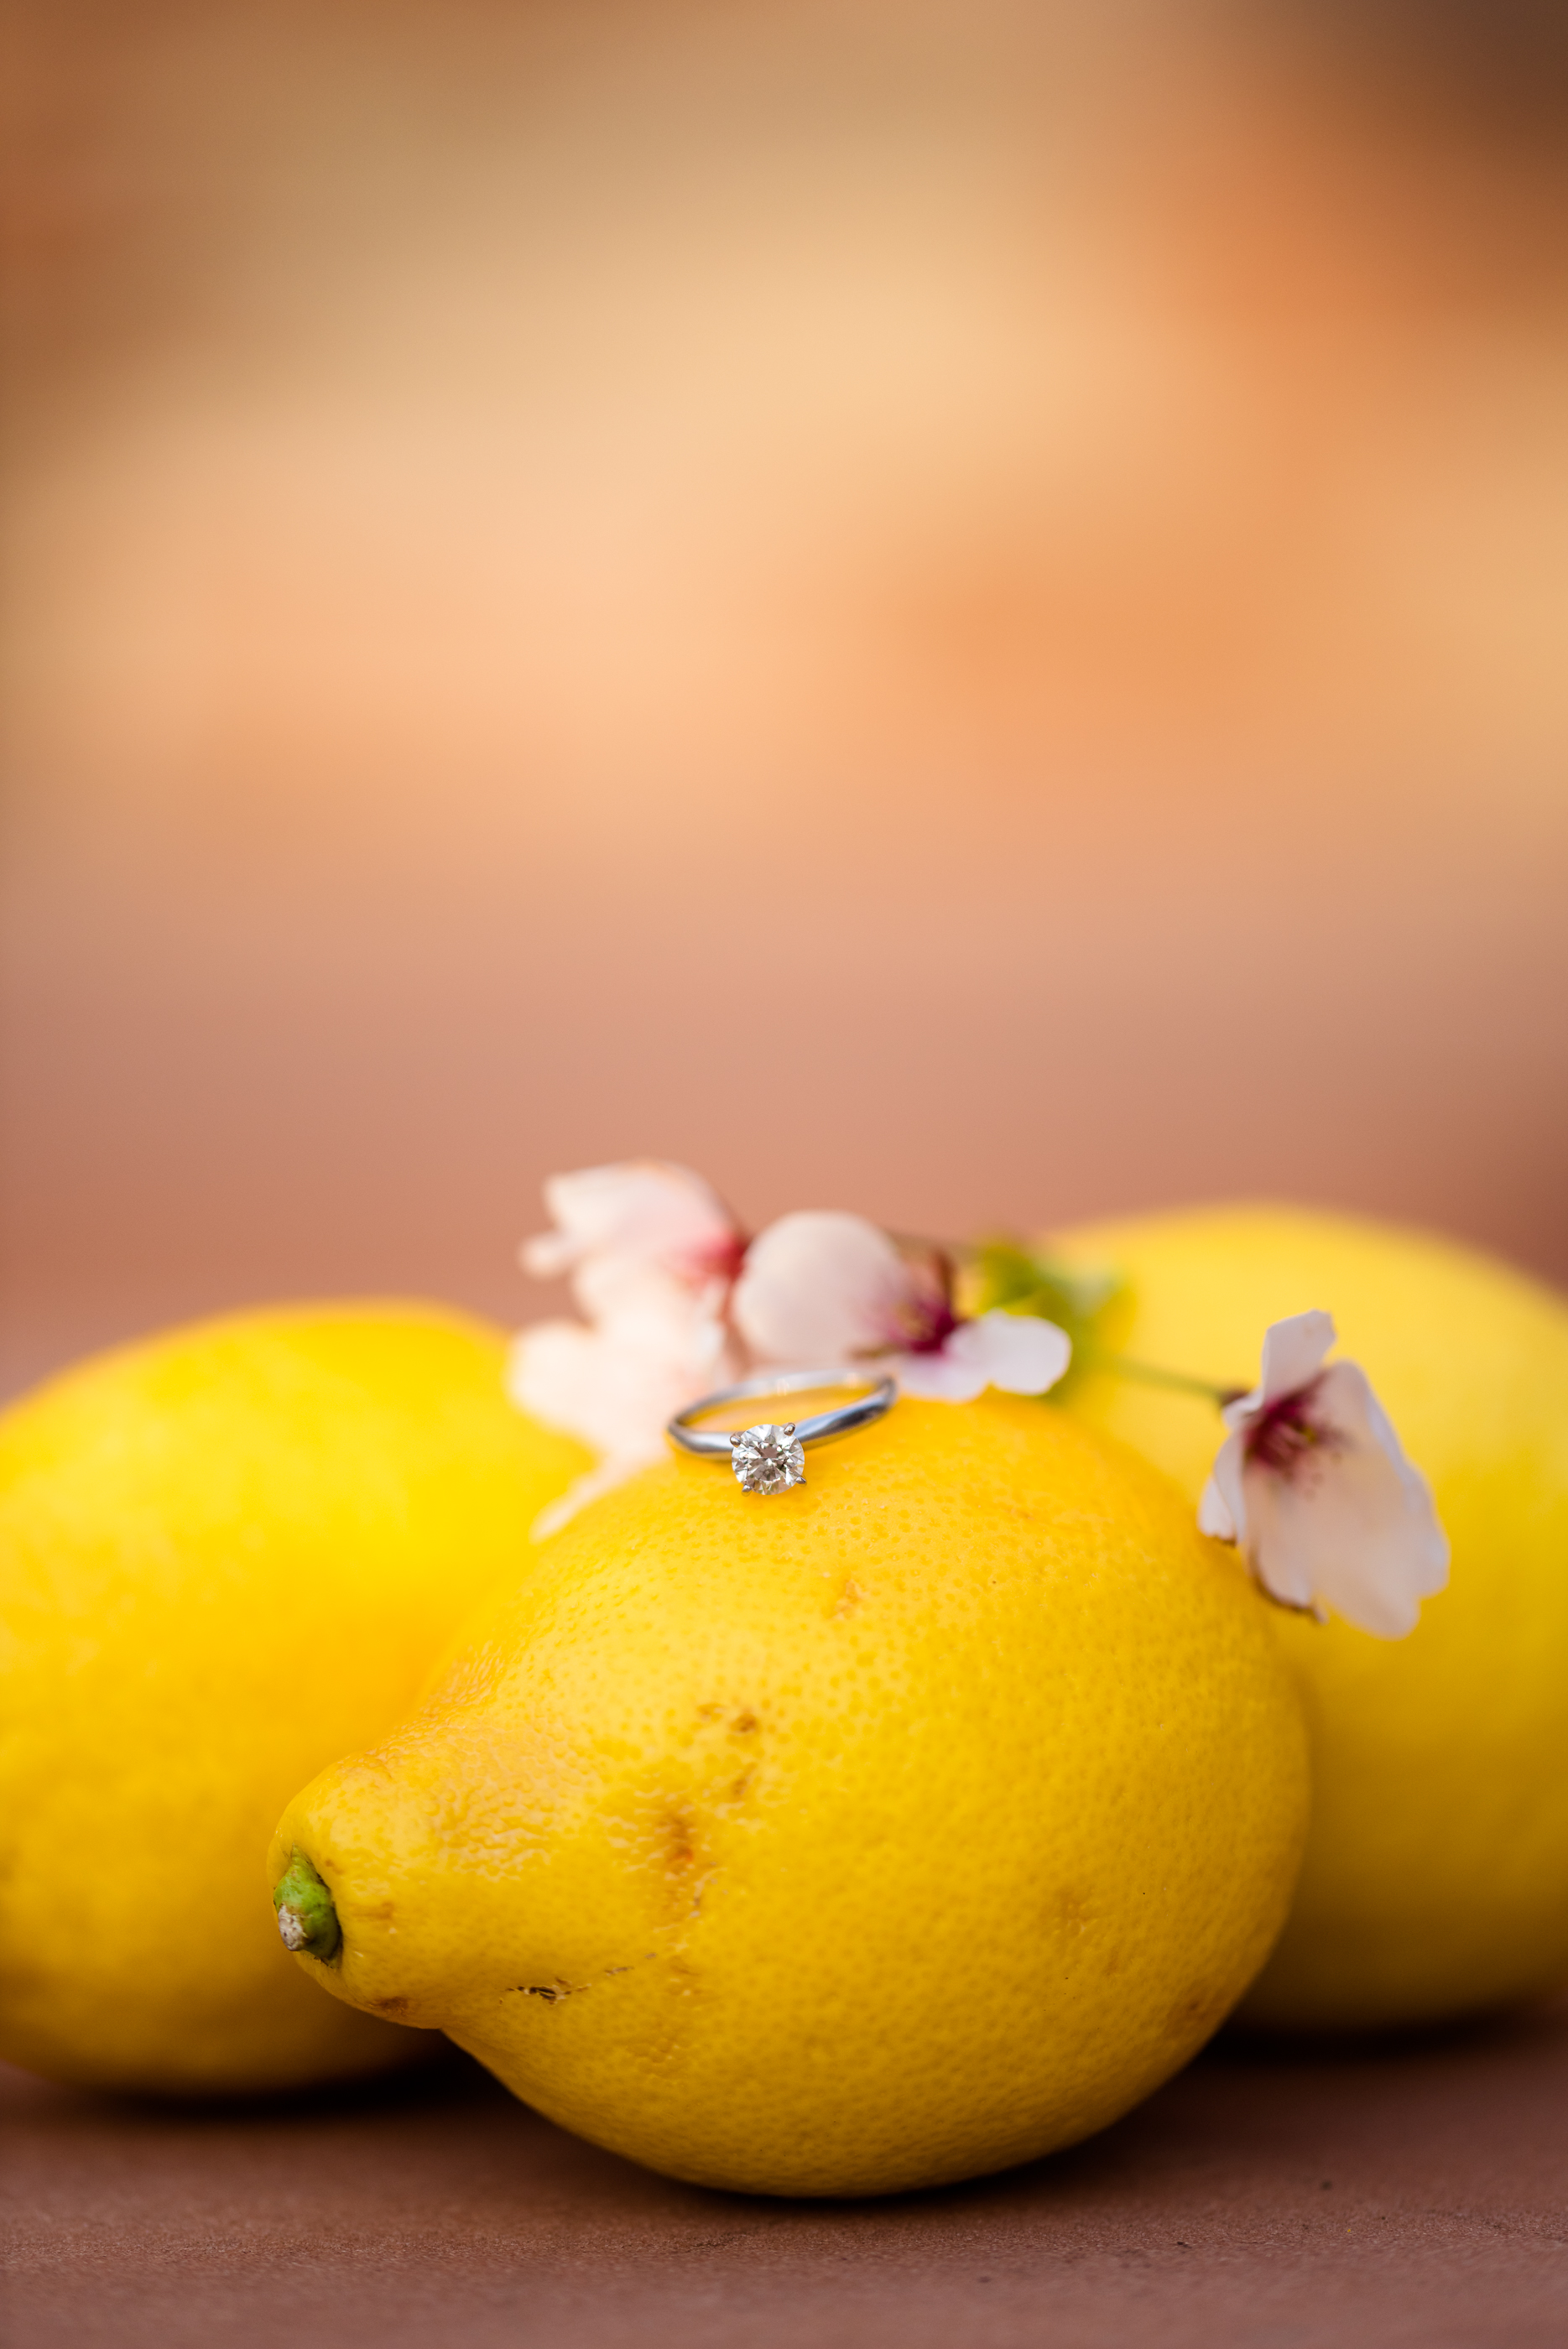 Lemons, blossoms, and diamond rings.